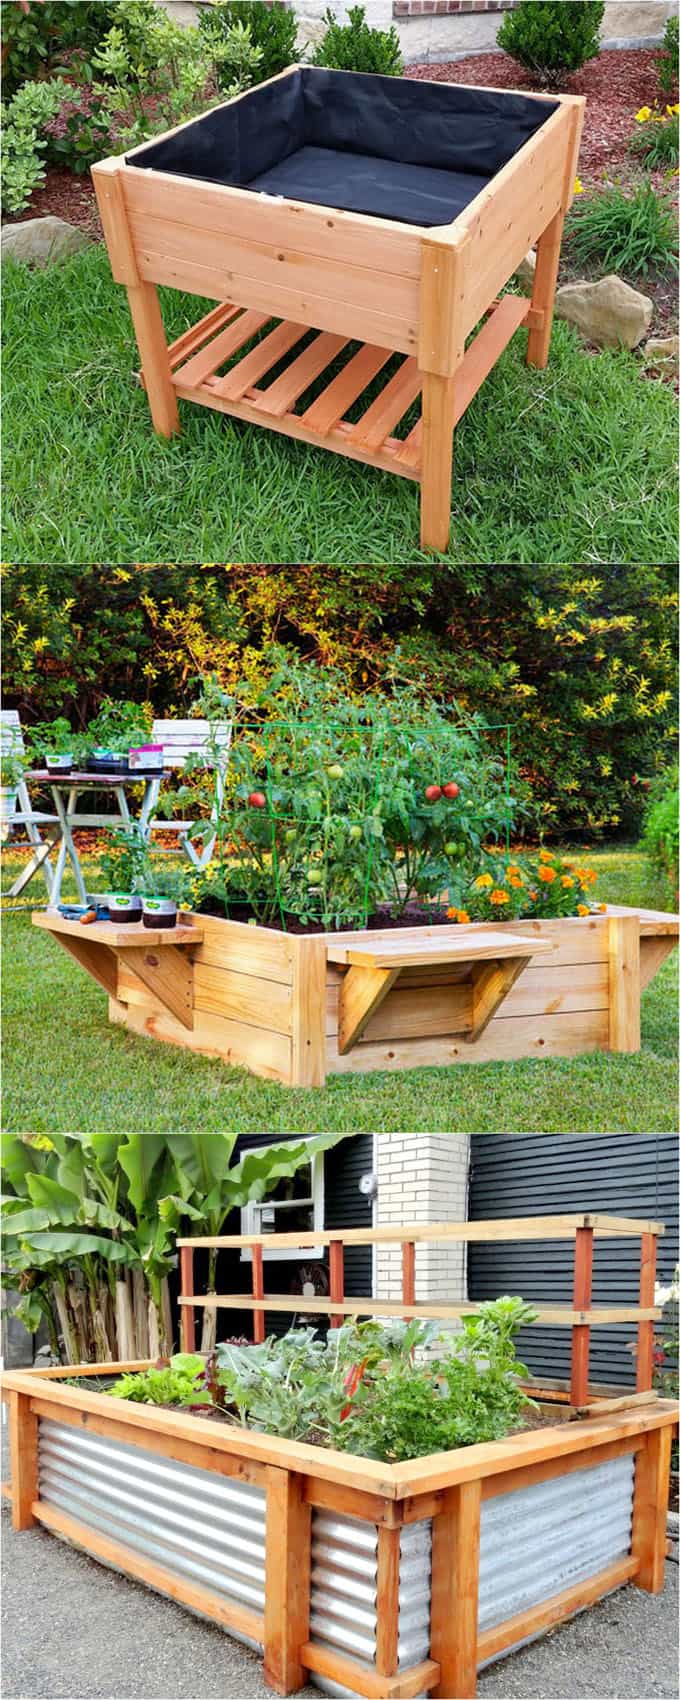 28 Amazing DIY Raised Bed Gardens - A Piece Of Rainbow on greenhouse design plans, raised vegetable garden design ideas, cedar raised garden bed plans, privacy fence design plans, best raised garden plans, diy raised garden beds plans, raised garden layout, raised bed garden box design, marshmallow catapult design plans, cheap raised garden bed plans, raised garden planting plans, corner pergola design plans, small garden design plans, vegetable garden design plans, raised bed gardening designs, exhibition booth design plans, attached pergola design plans, easy raised garden plans, luxury home design plans,